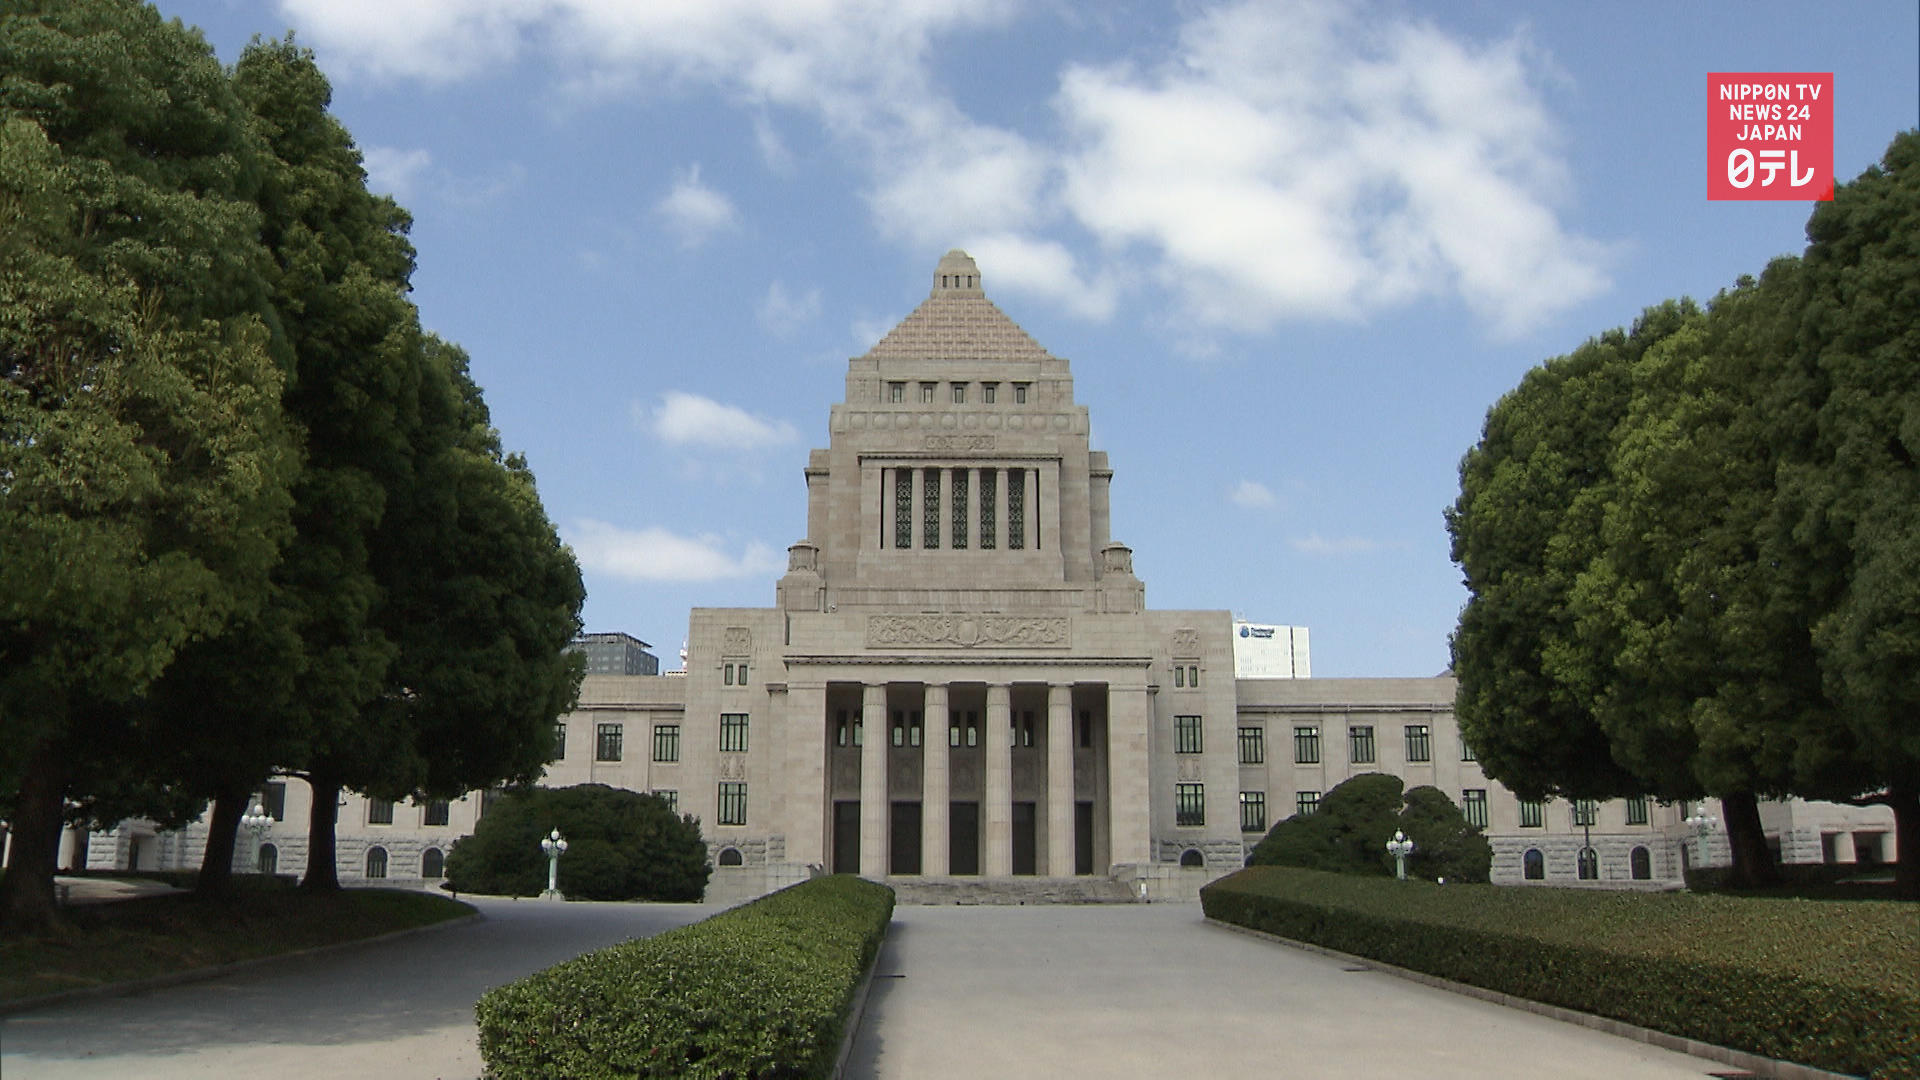 Japan lawmakers' average income drops for first time in 4 years